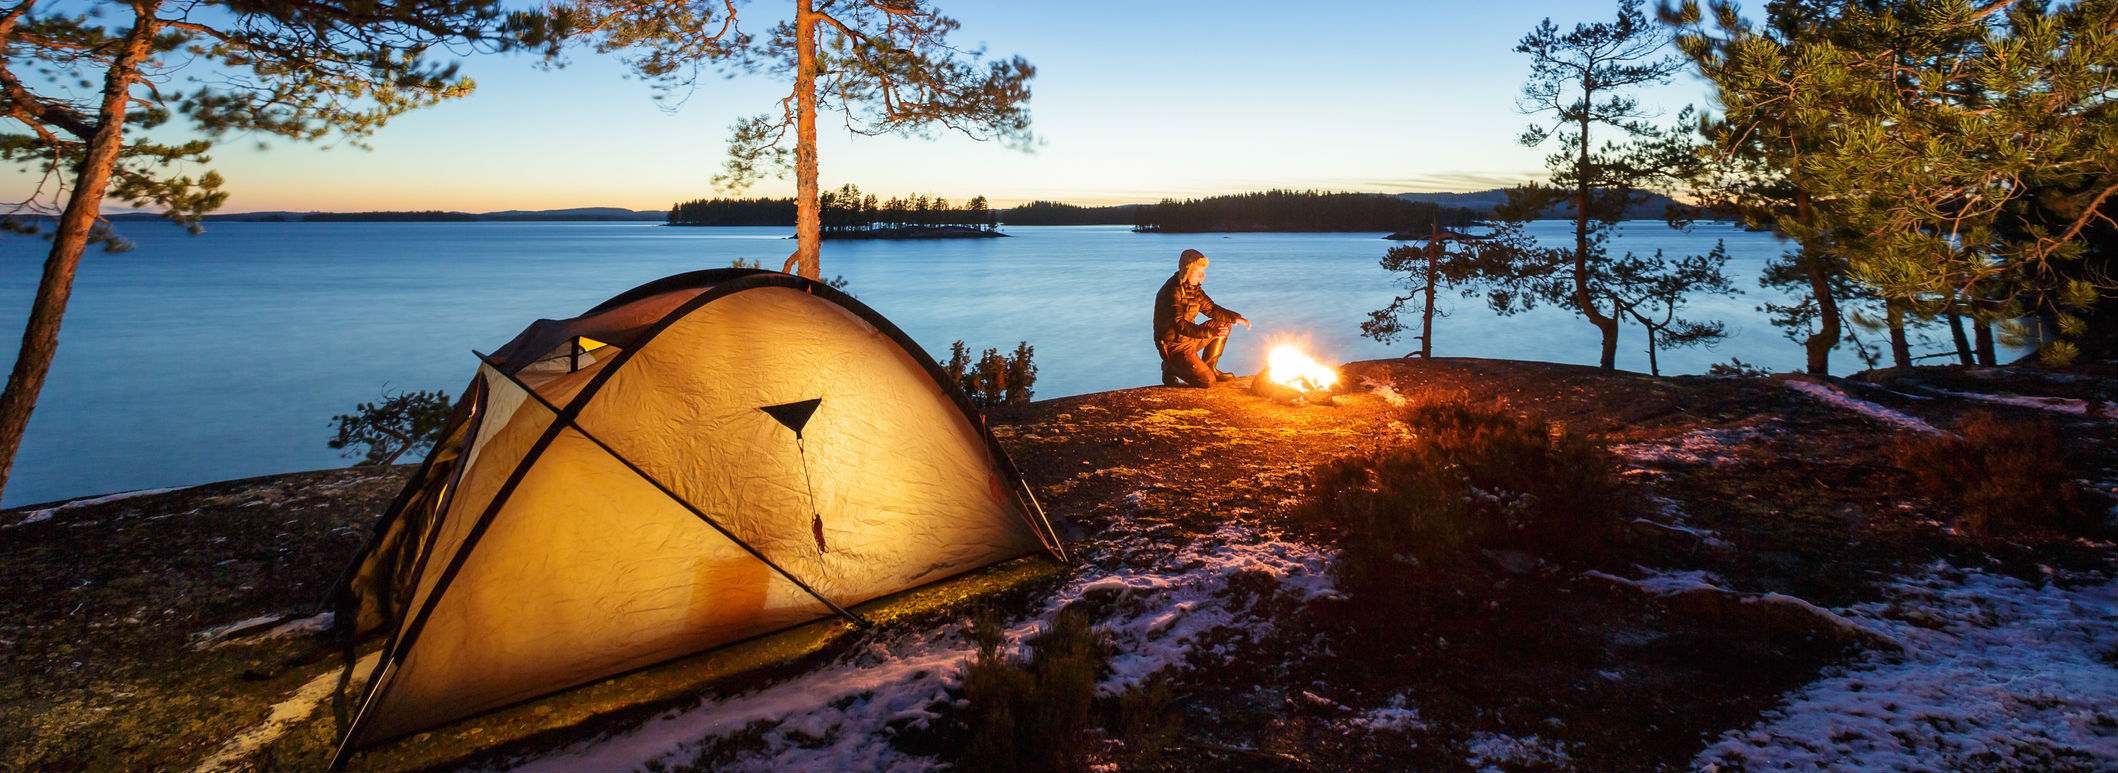 Cold Weather camping tips